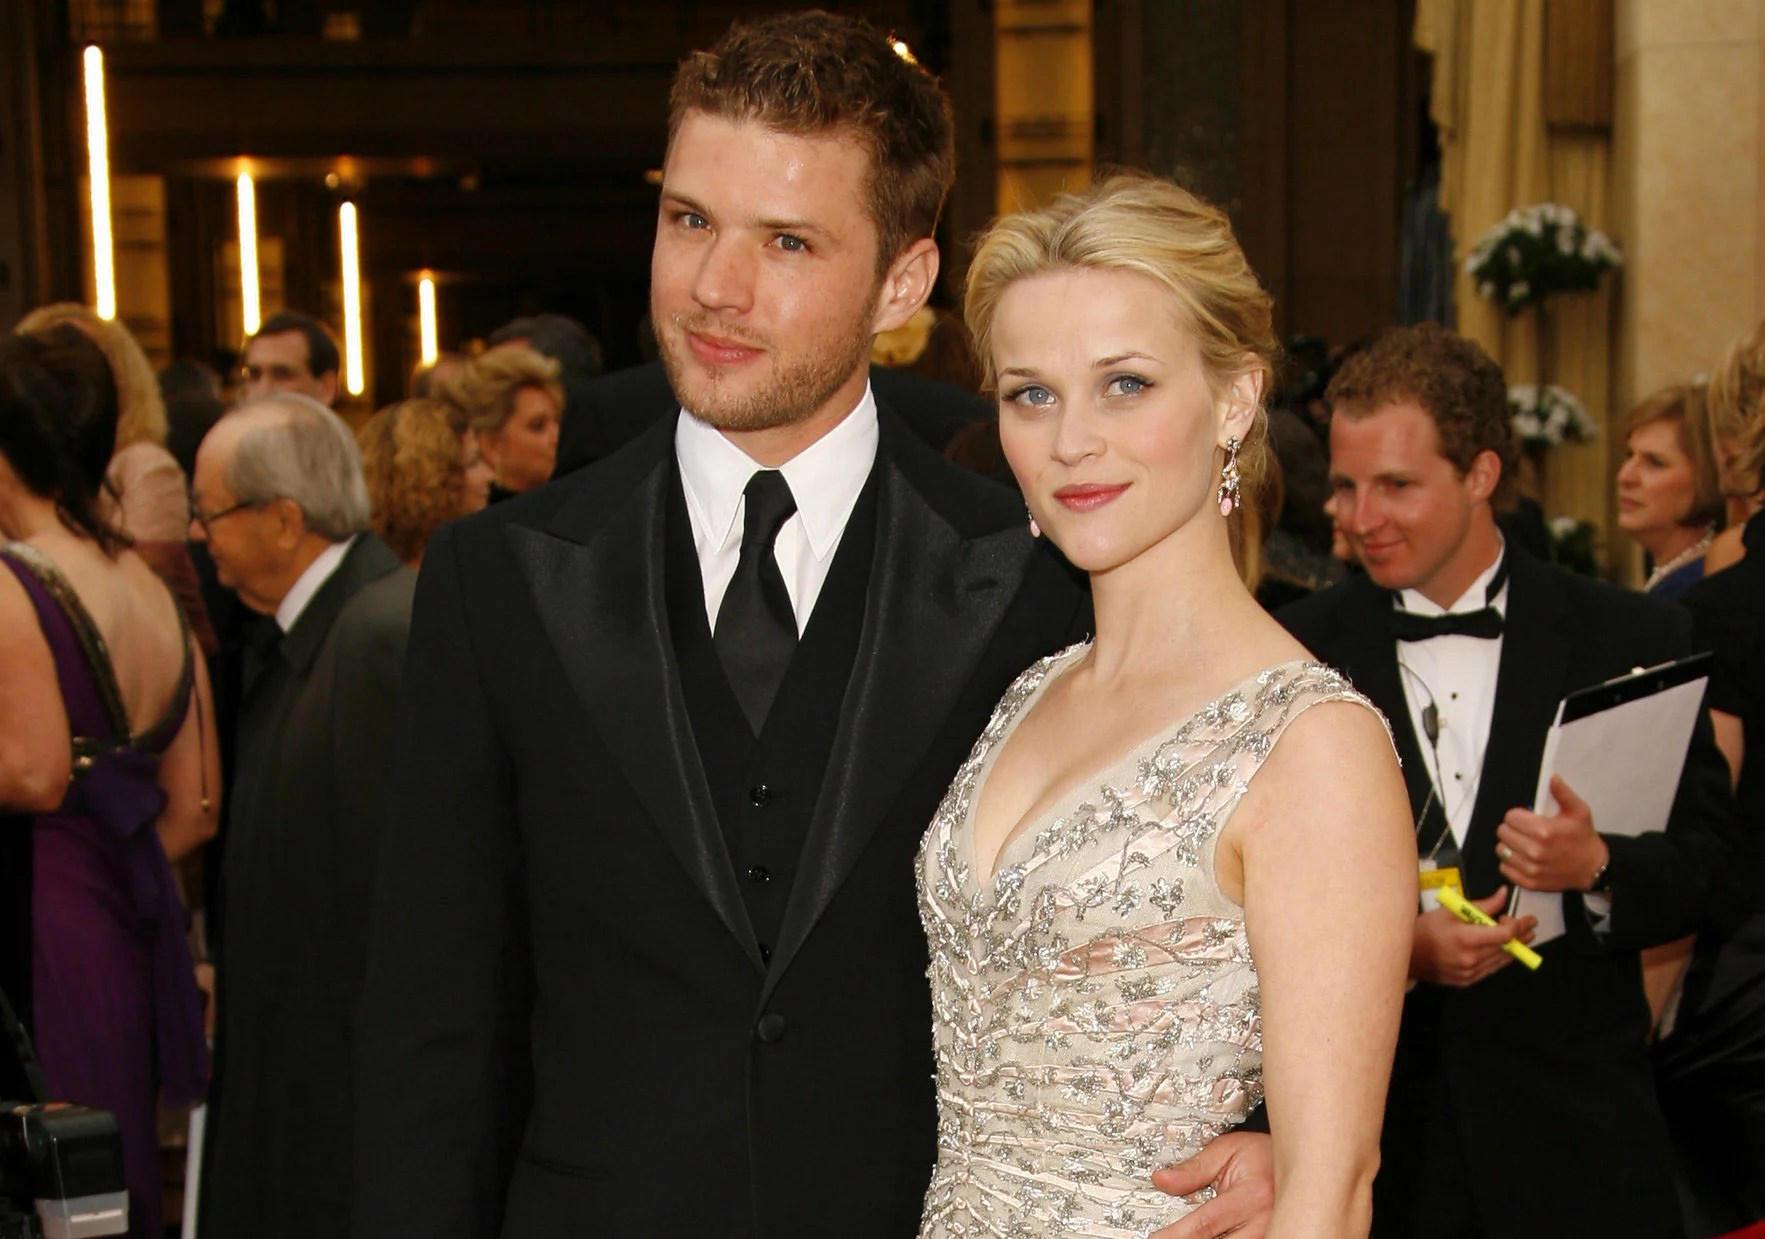 Reese Witherspoon Net Worth Income Source Career  House cars     Talking about her personal life  Reese Witherspoon got married to Actor  Ryan Phillippe on June 5  1999  at Old Wide Awake Plantation